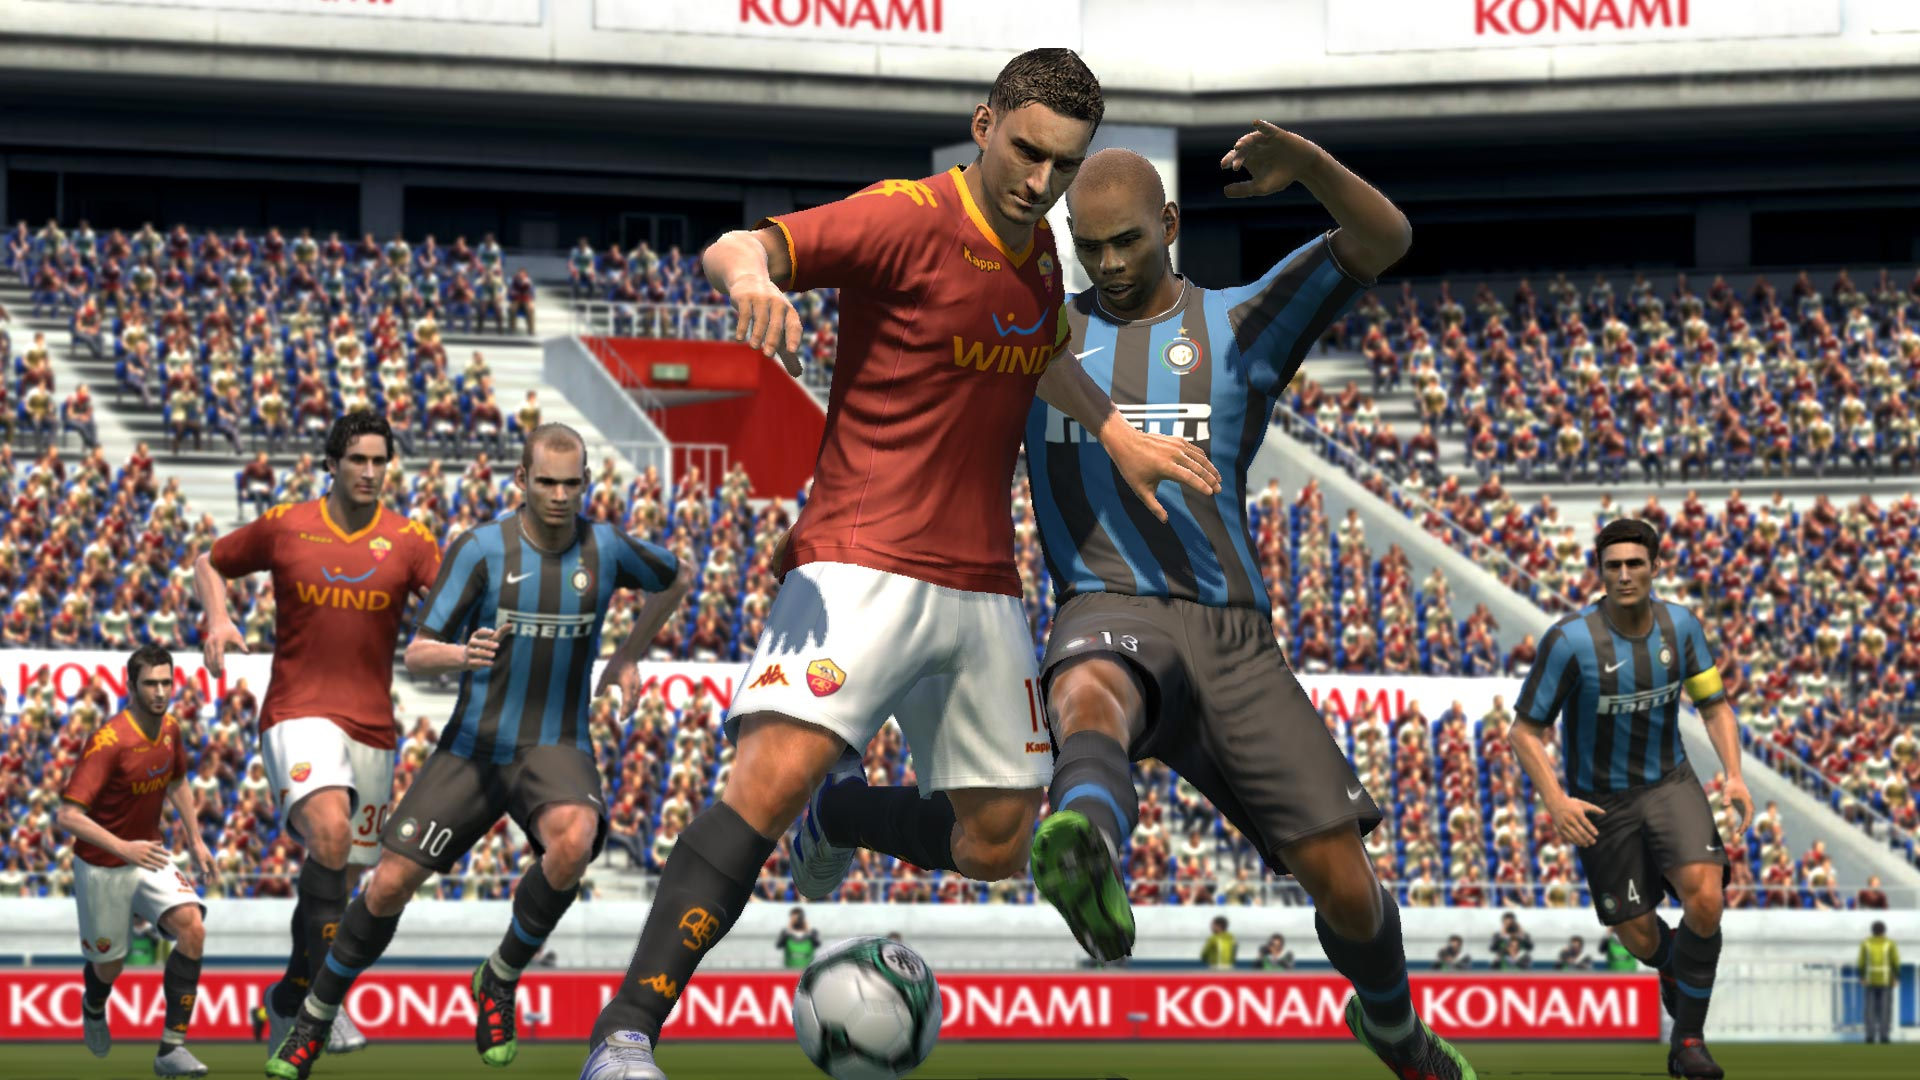 Al fin!! primer trailer Gameplay de Pro Evolution Soccer 2011, y no se si será tan fantástico [Video] #E3